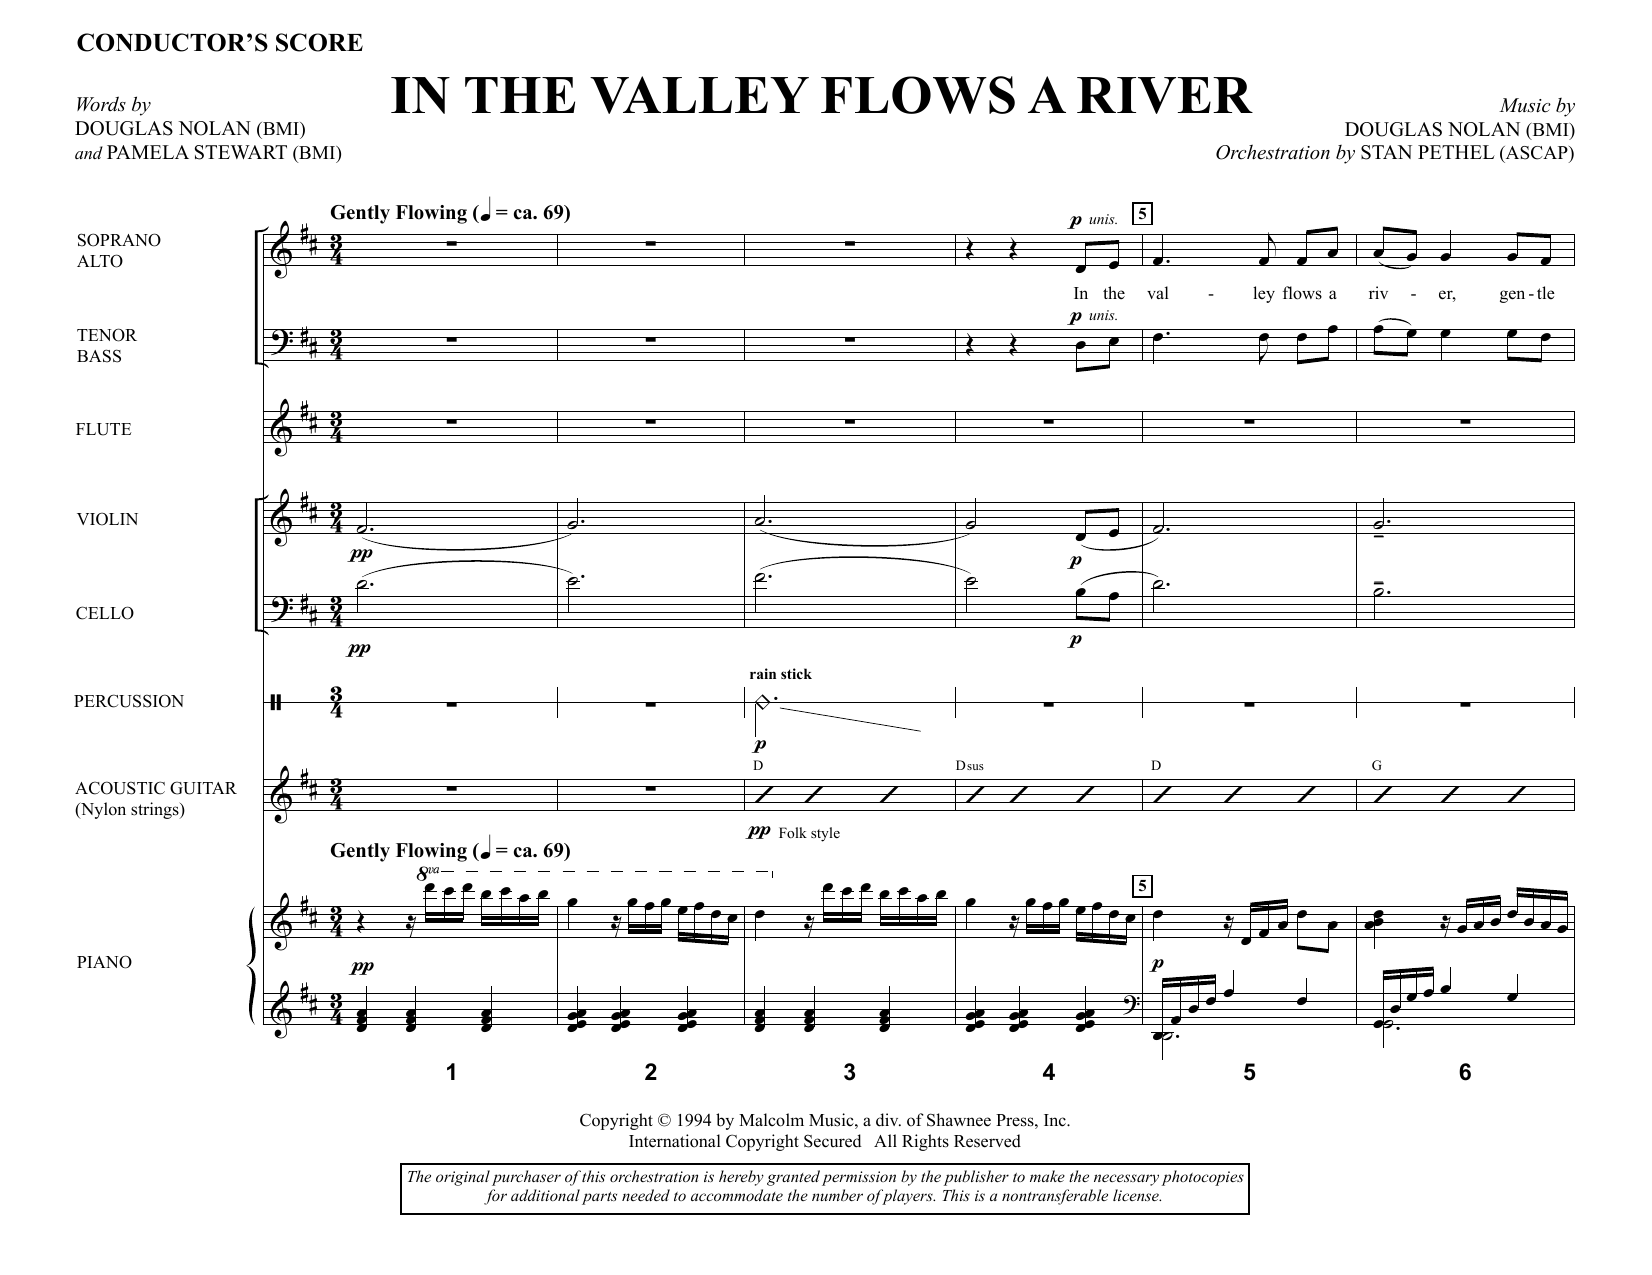 Douglas Nolan In the Valley Flows a River - Full Score sheet music notes and chords. Download Printable PDF.